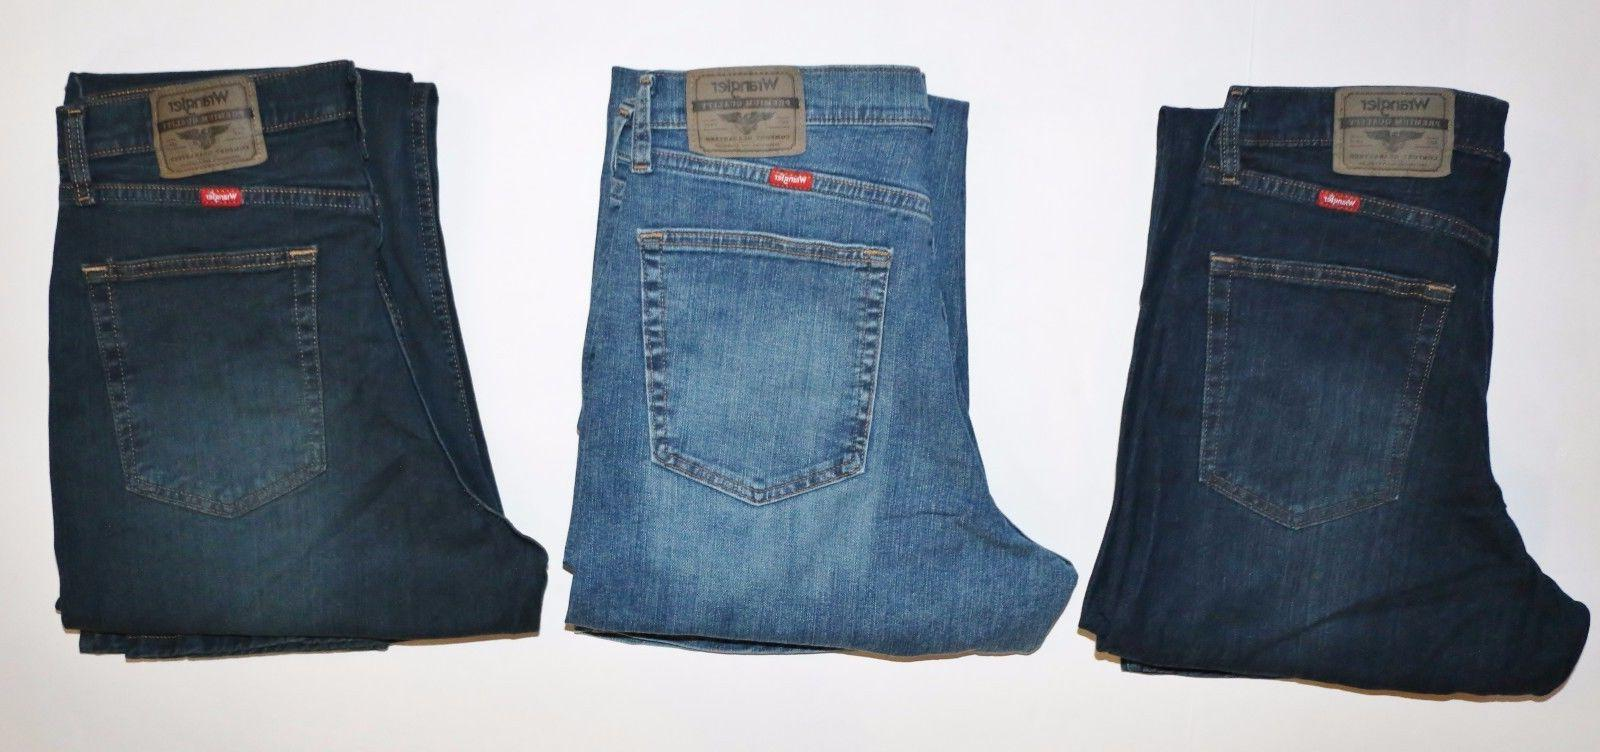 New Wrangler Fit Jeans with Denim and Men's